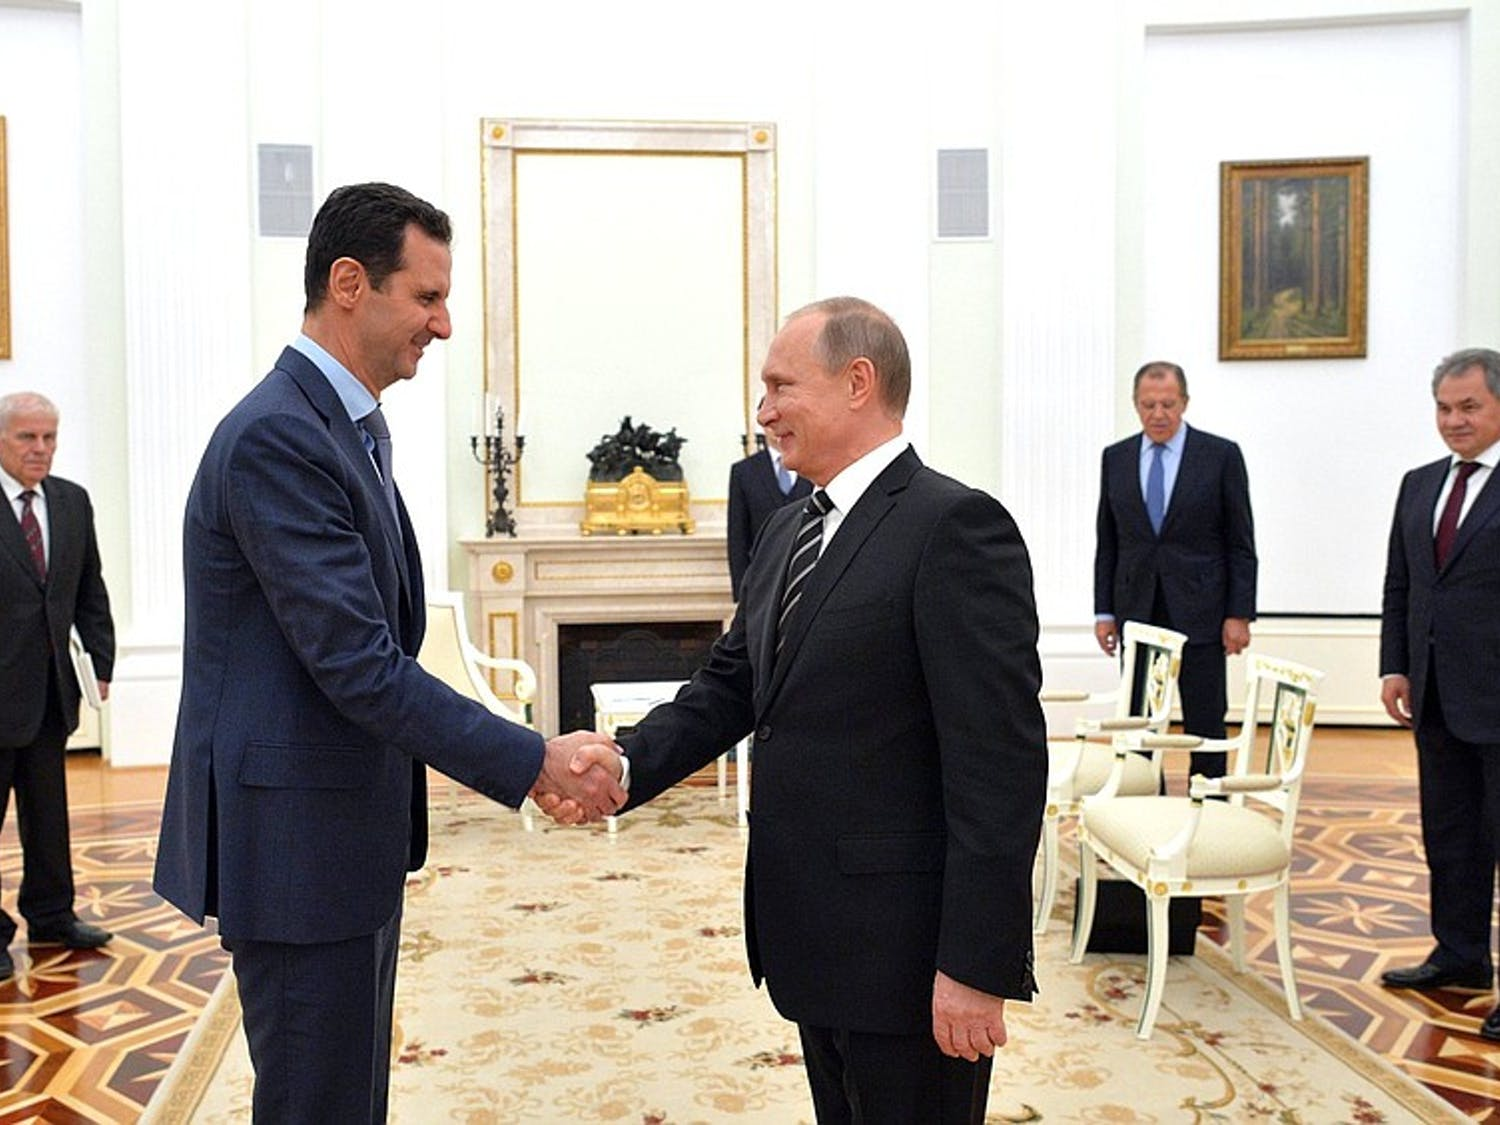 Bashar al-Assad's actions, supported by the Russian government, has reemphasized the need to support Syrian refugees.